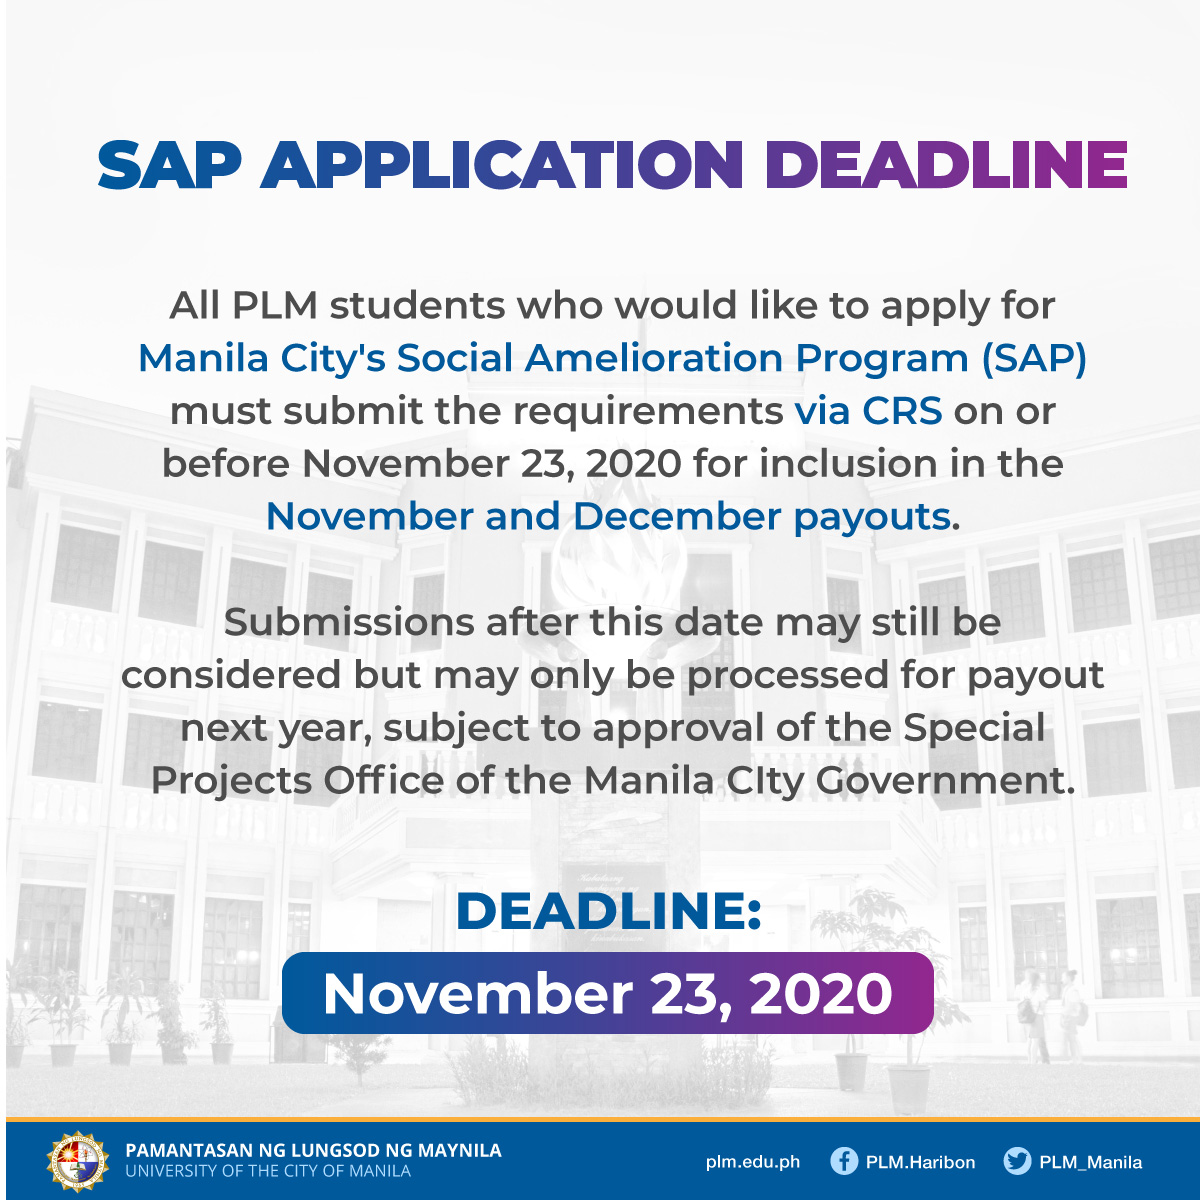 Advisory on the submission deadline for SAP requirements